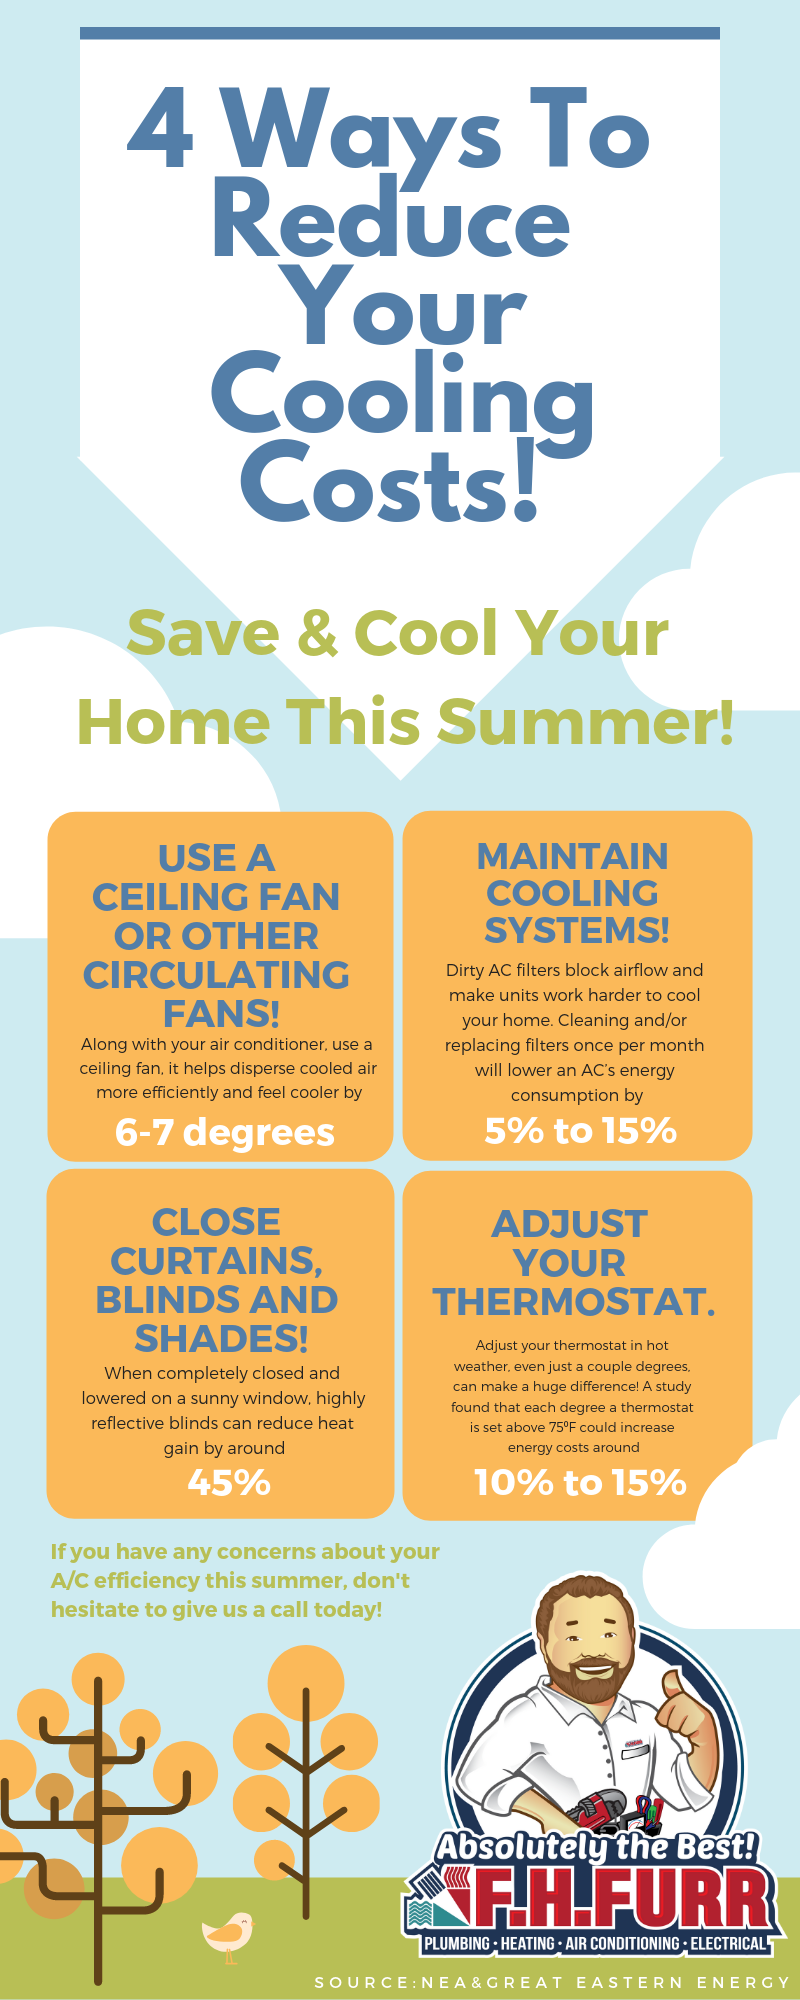 4 Ways To Reduce Your Cooling Costs! MAY